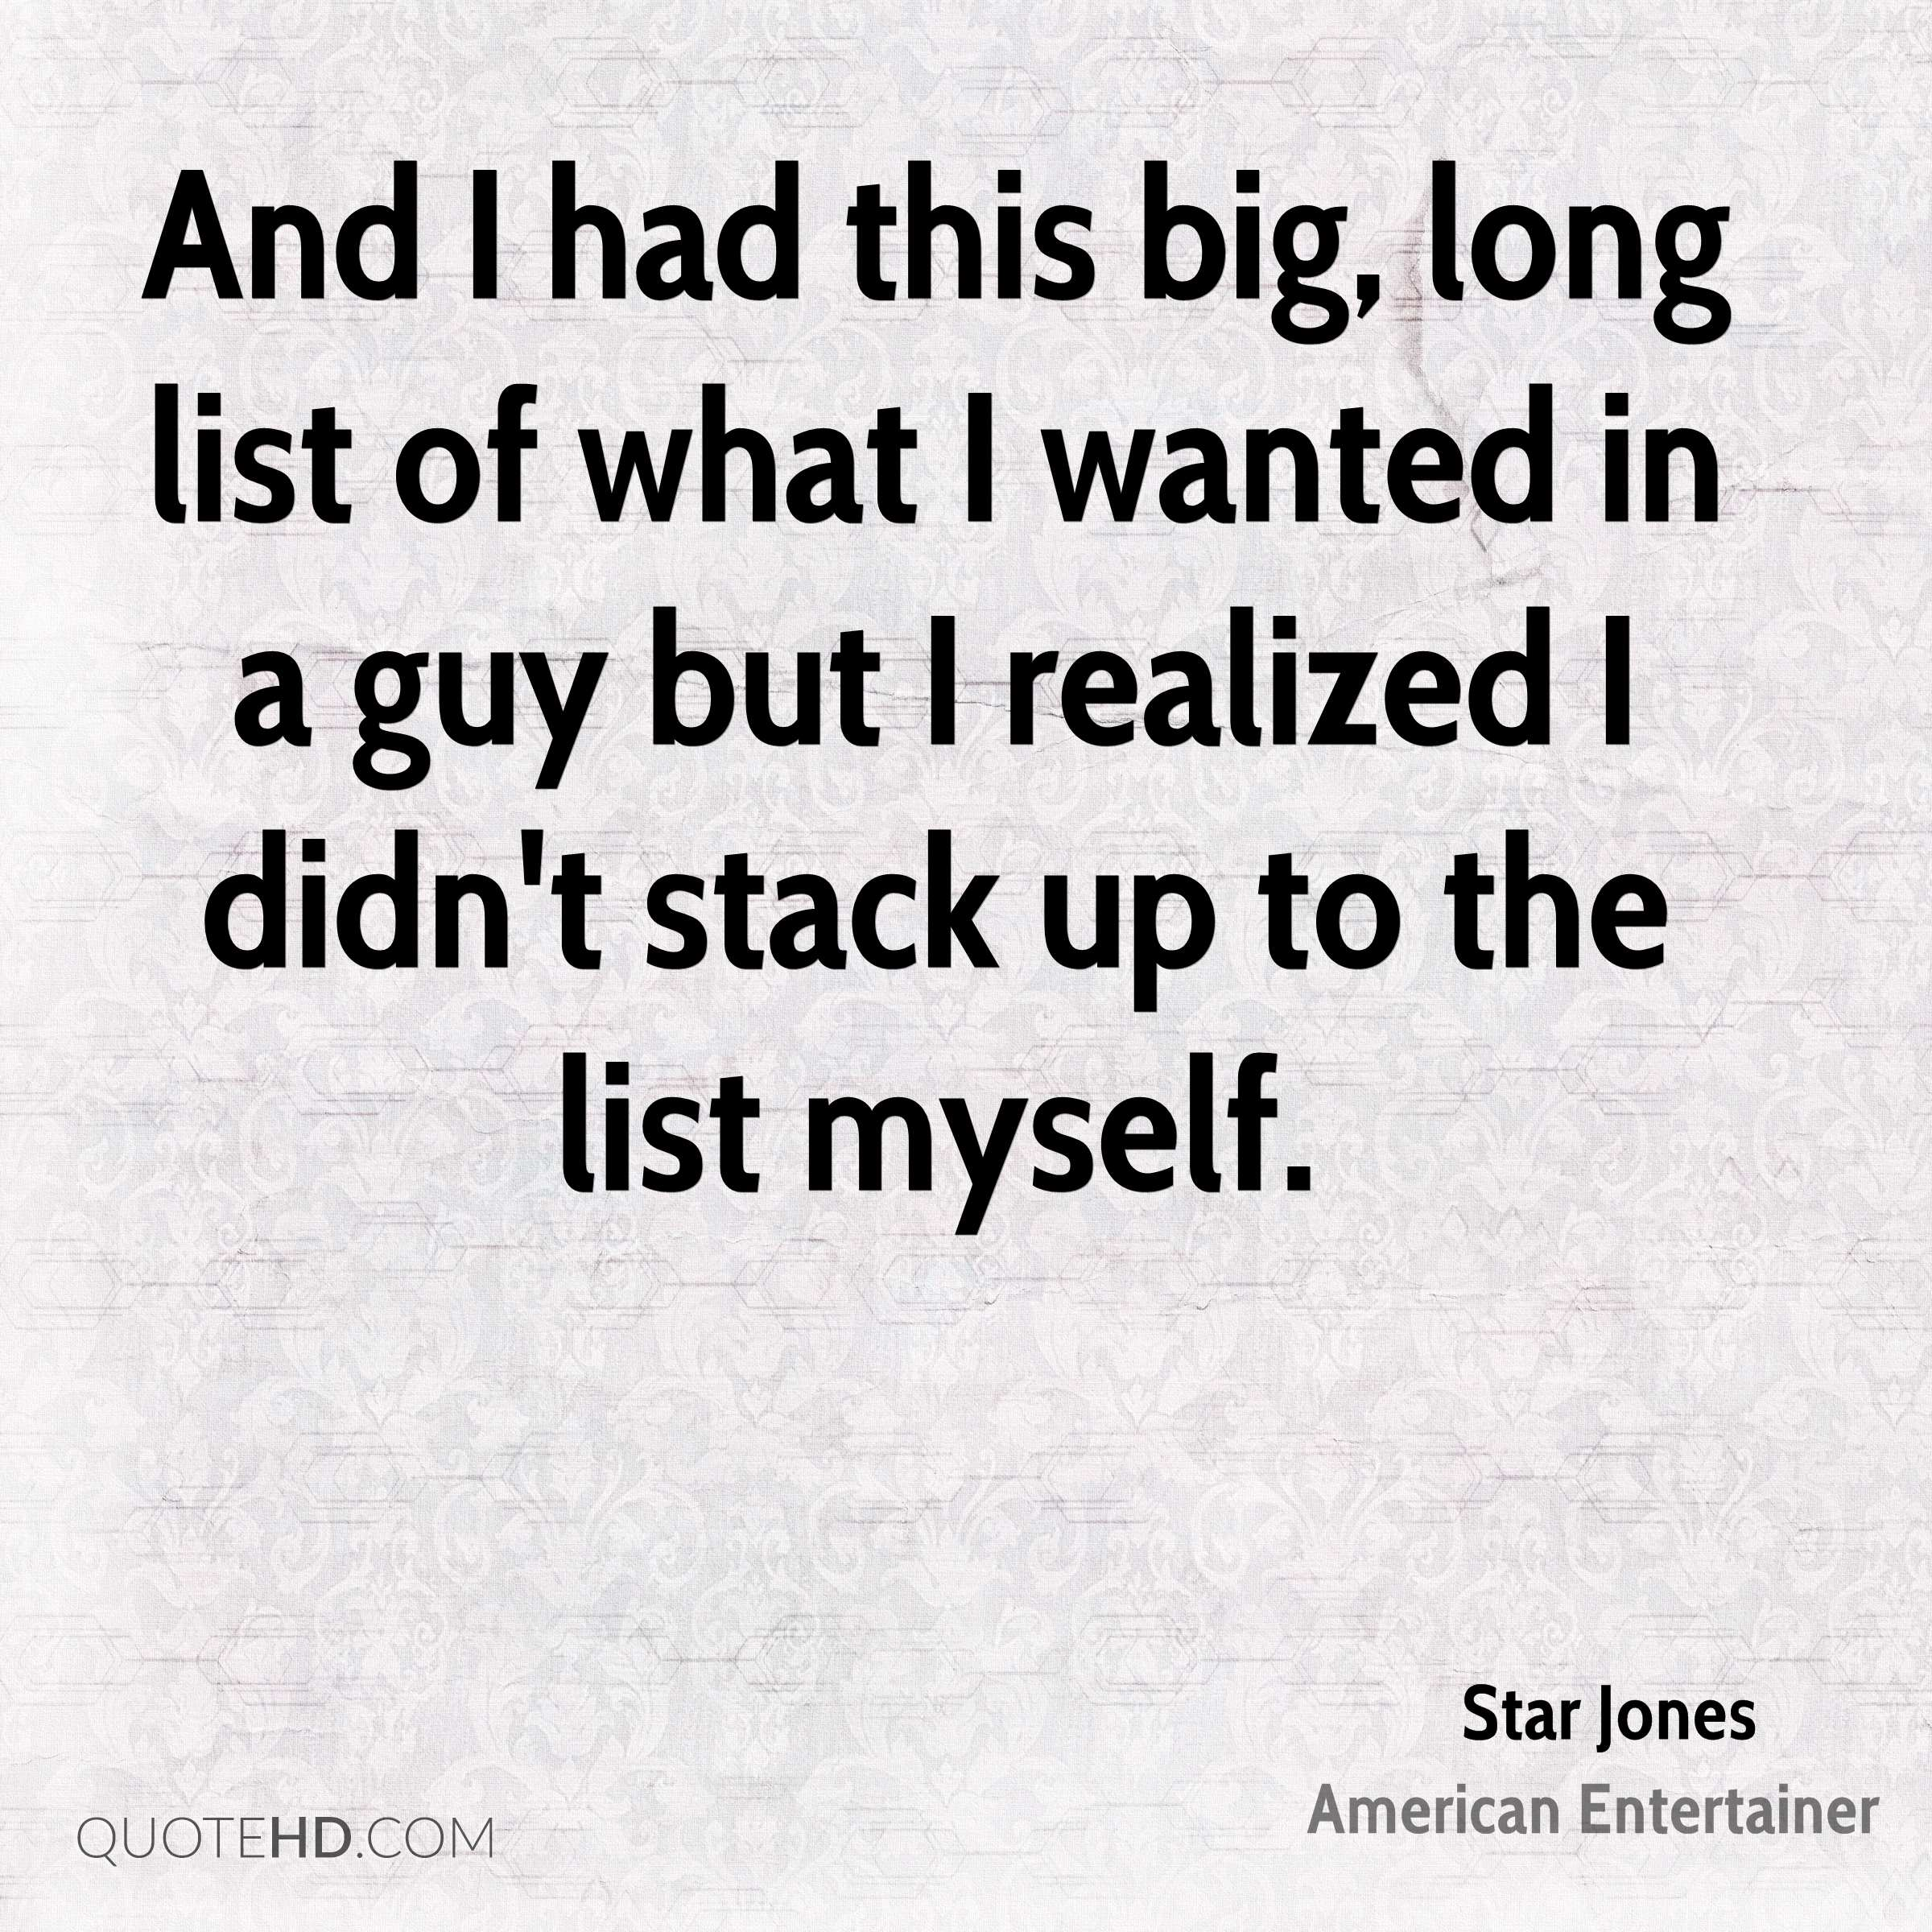 And I had this big, long list of what I wanted in a guy but I realized I didn't stack up to the list myself.